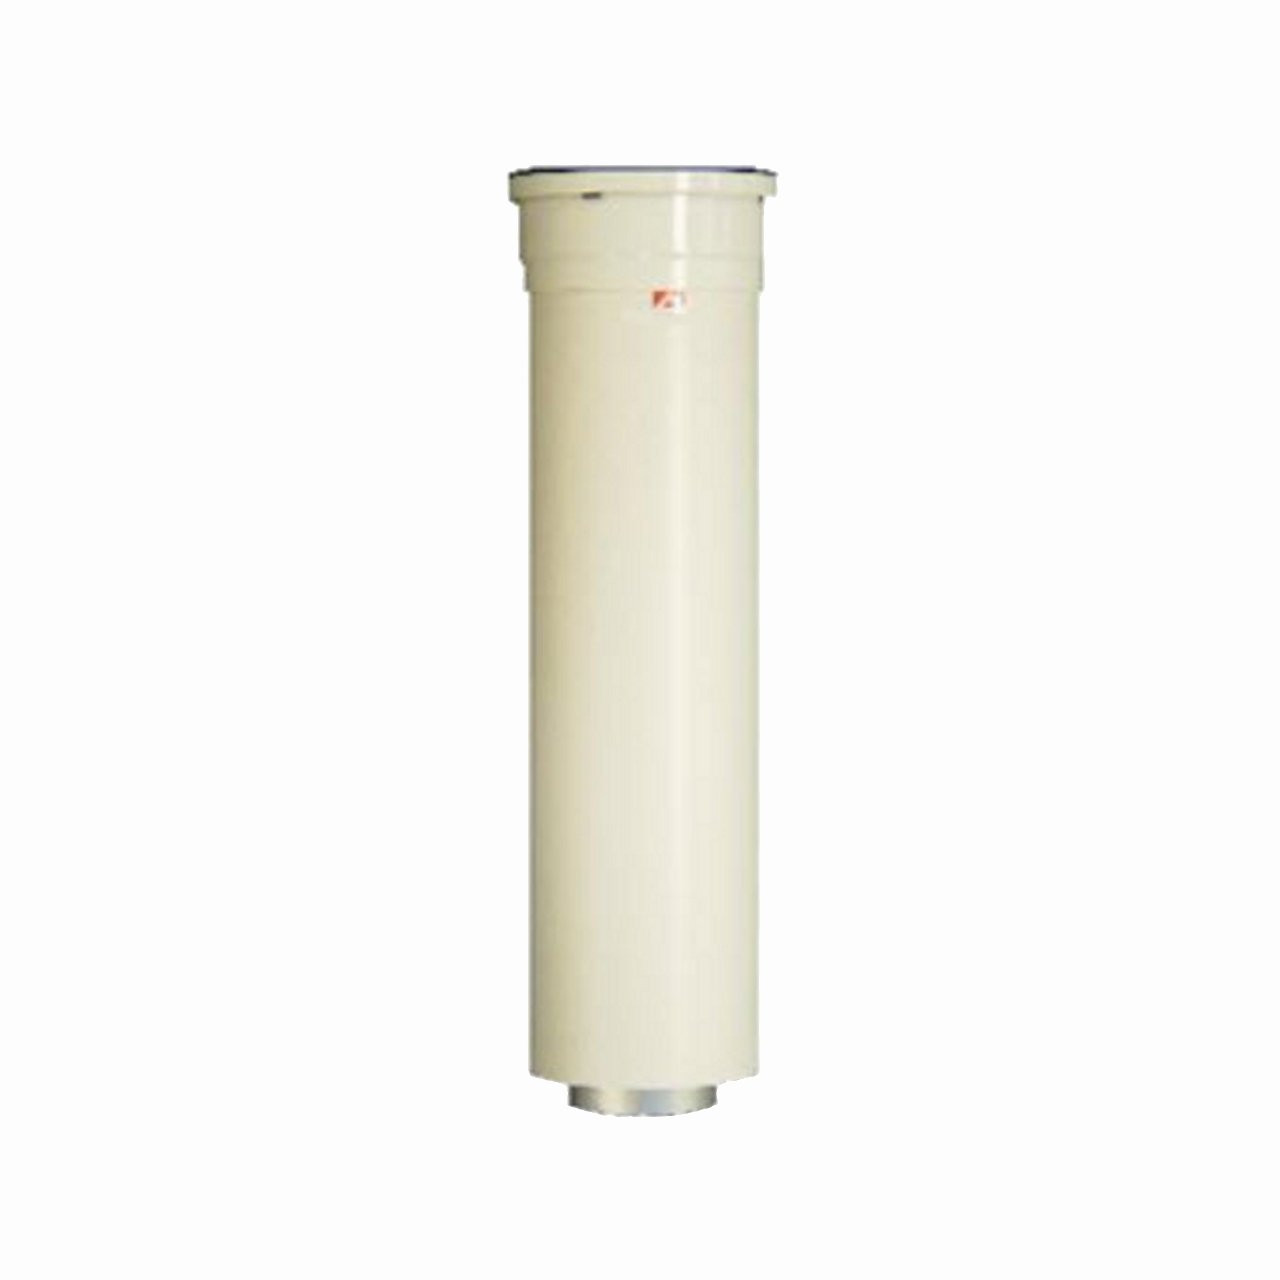 Rinnai 224053 Vent Pipe Extension 39-Inch